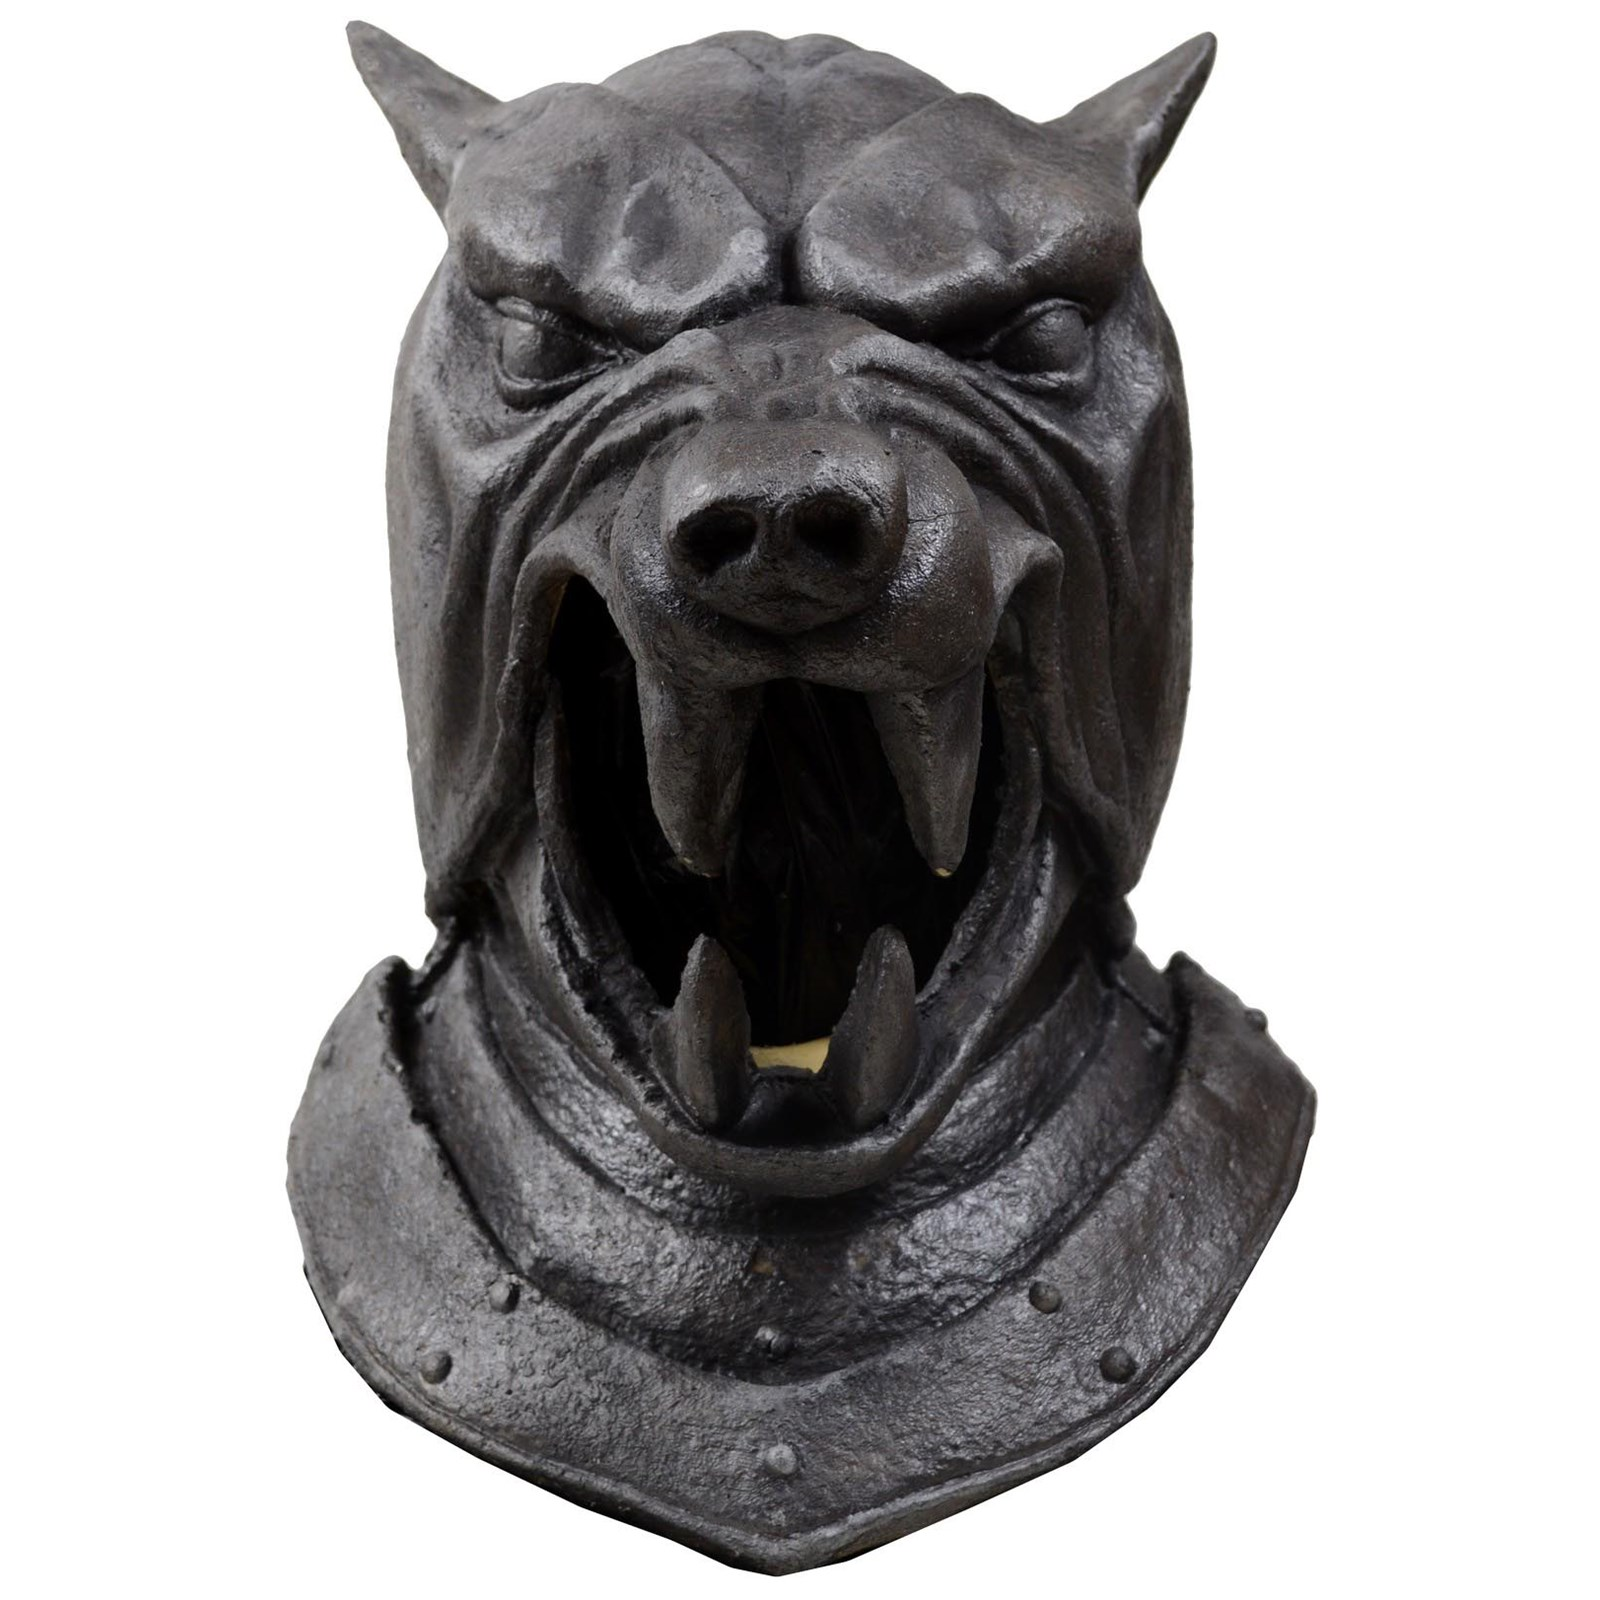 Game of Thrones Adult The Hound Helmet Halloween Costume Accessory